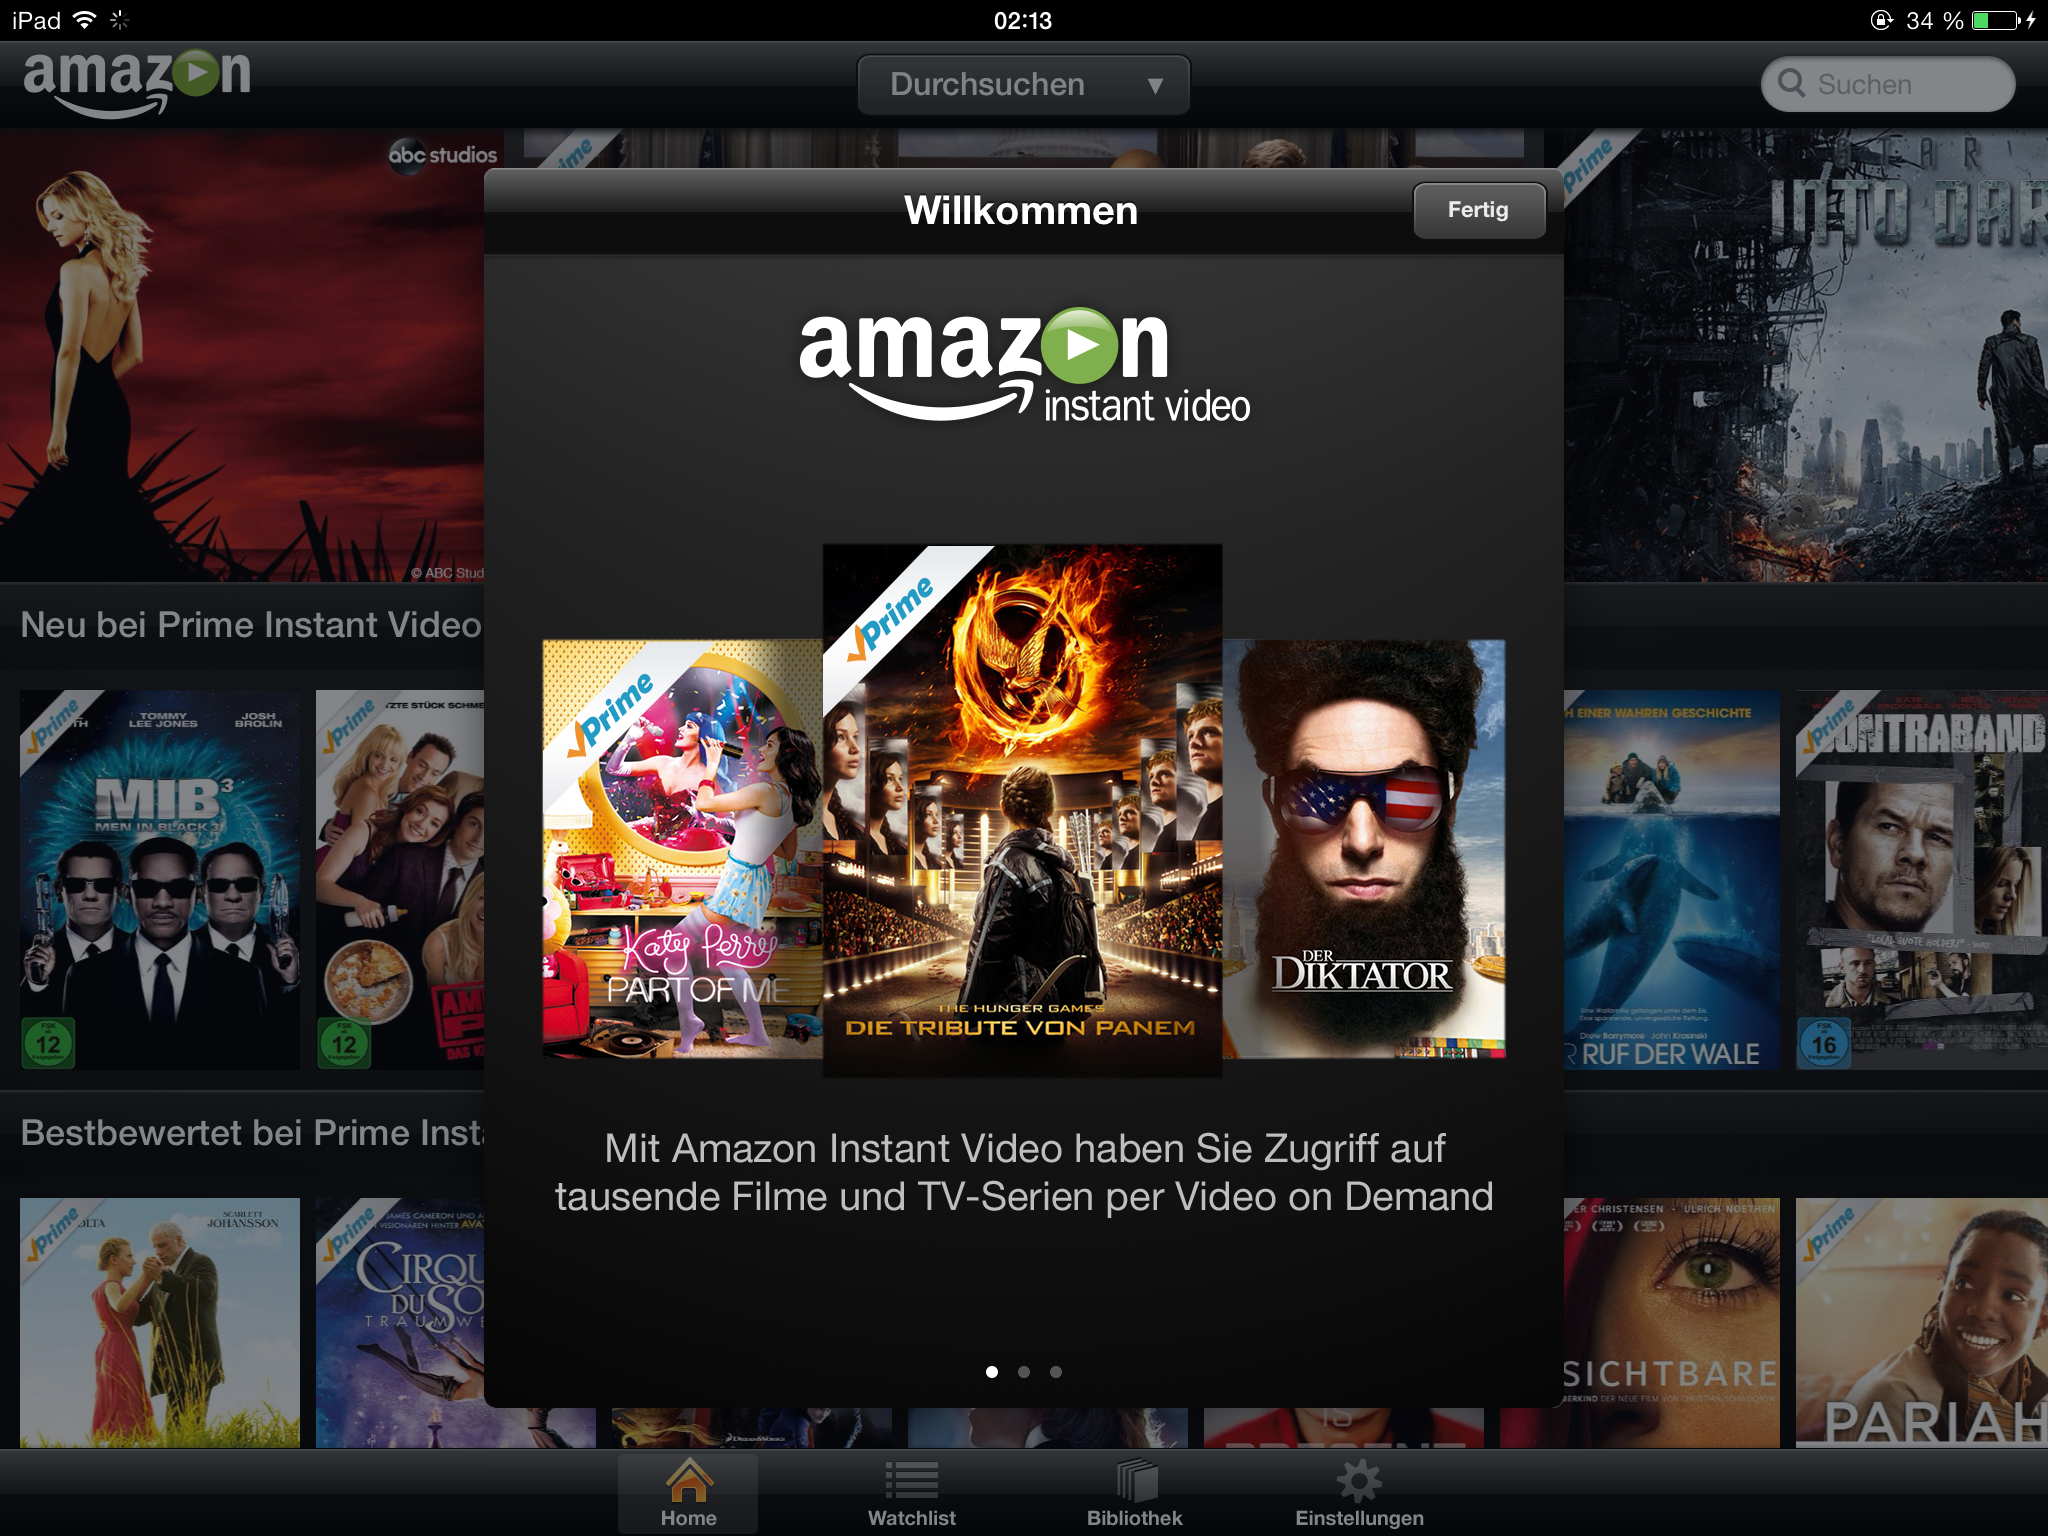 Amazon Instant Video: Mehr Traffic in USA als Hulu und Apple